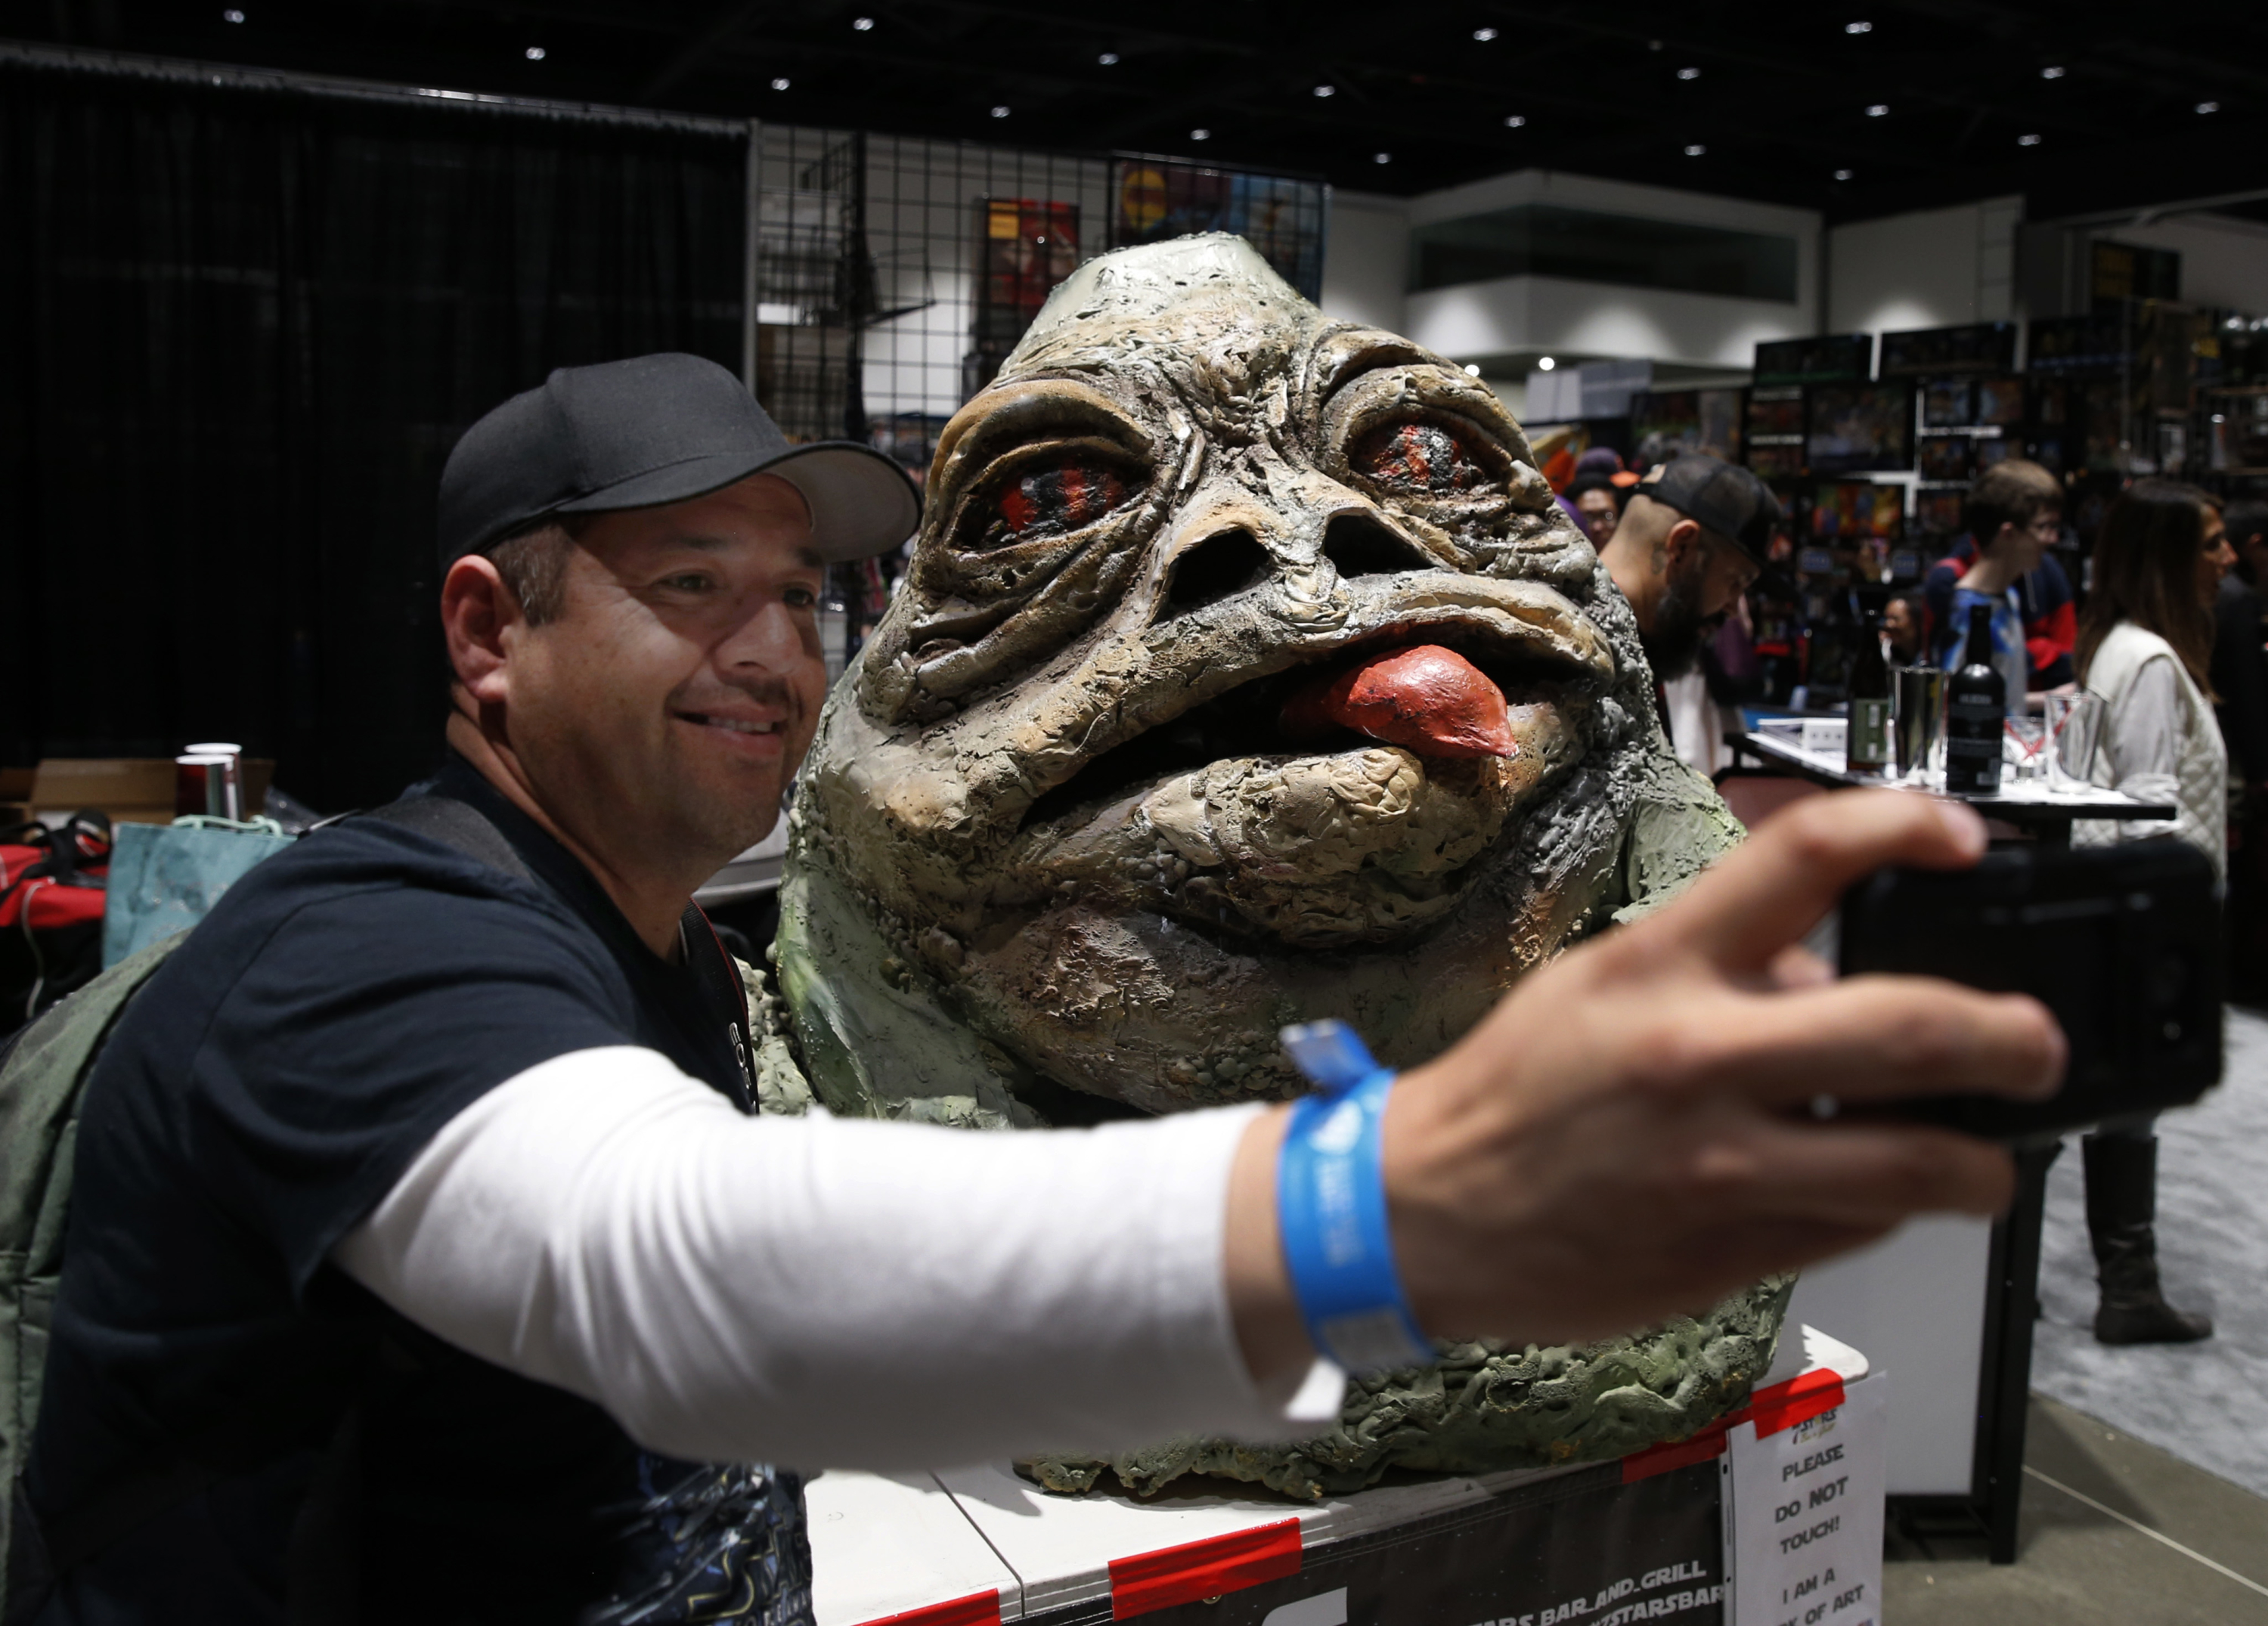 Silicon Valley Comic Con 2019: An insider's guide | Datebook